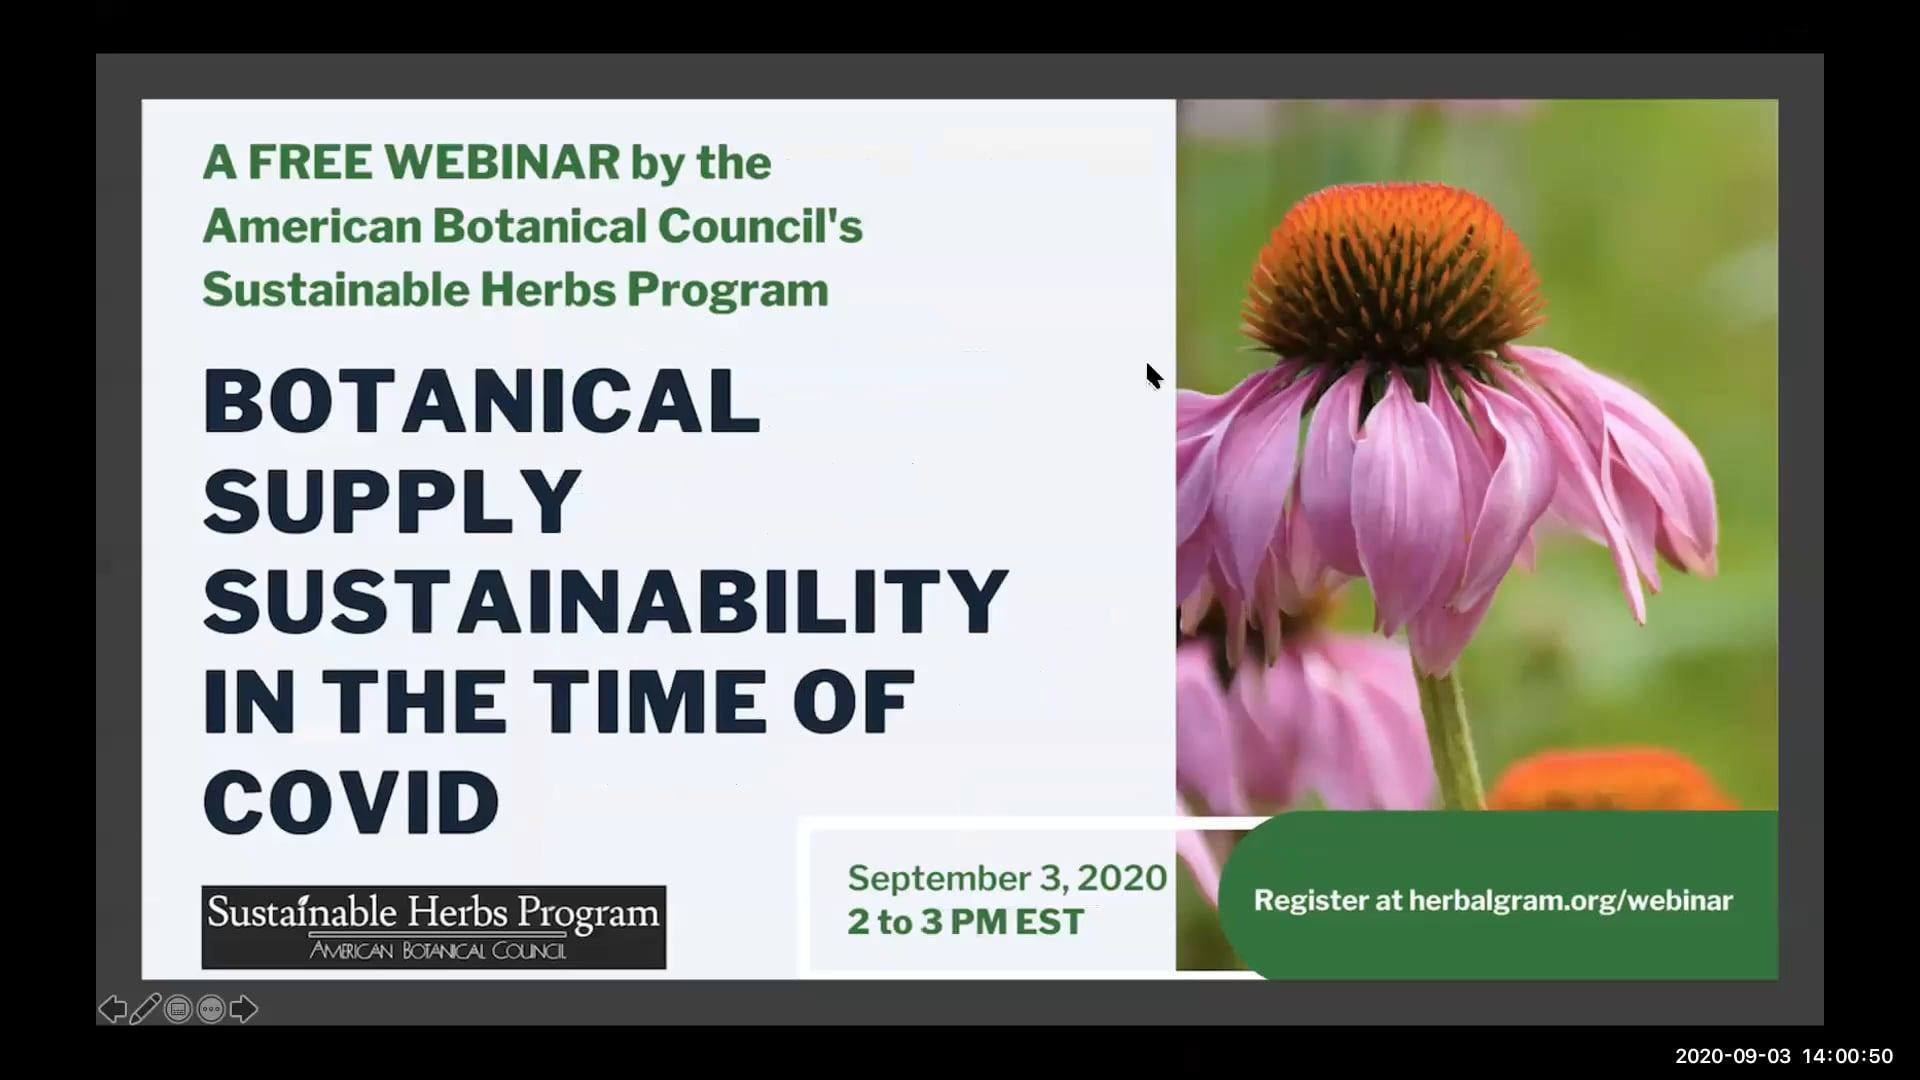 Botanical Supply Sustainability in the Time of COVID